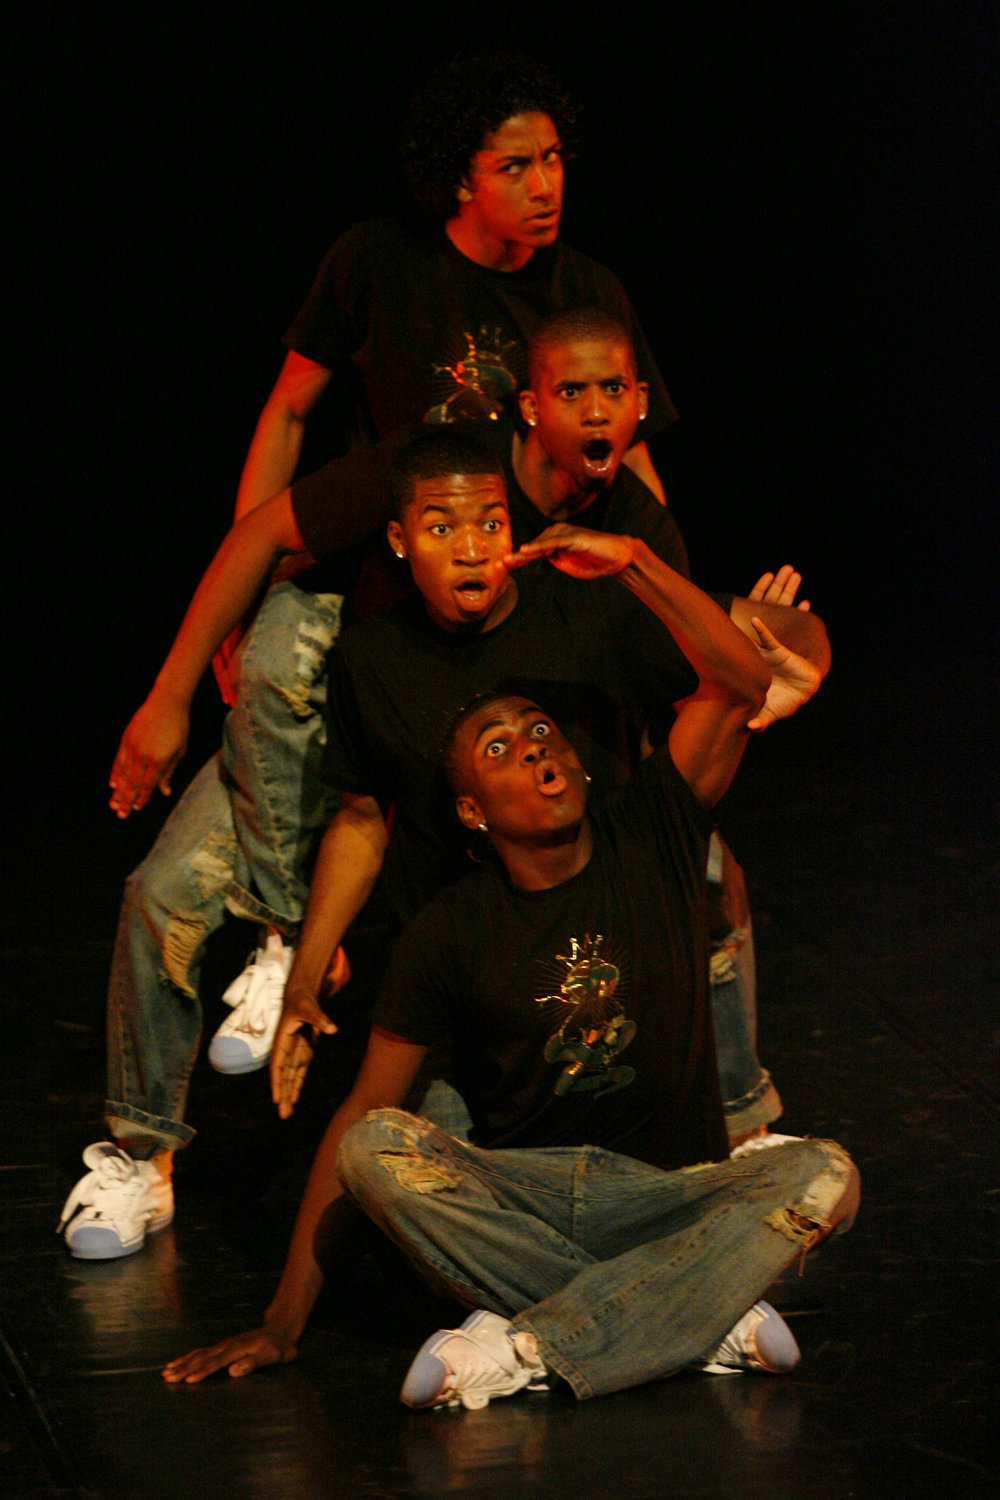 2011 Babyboyz showcase presentation. Photographer